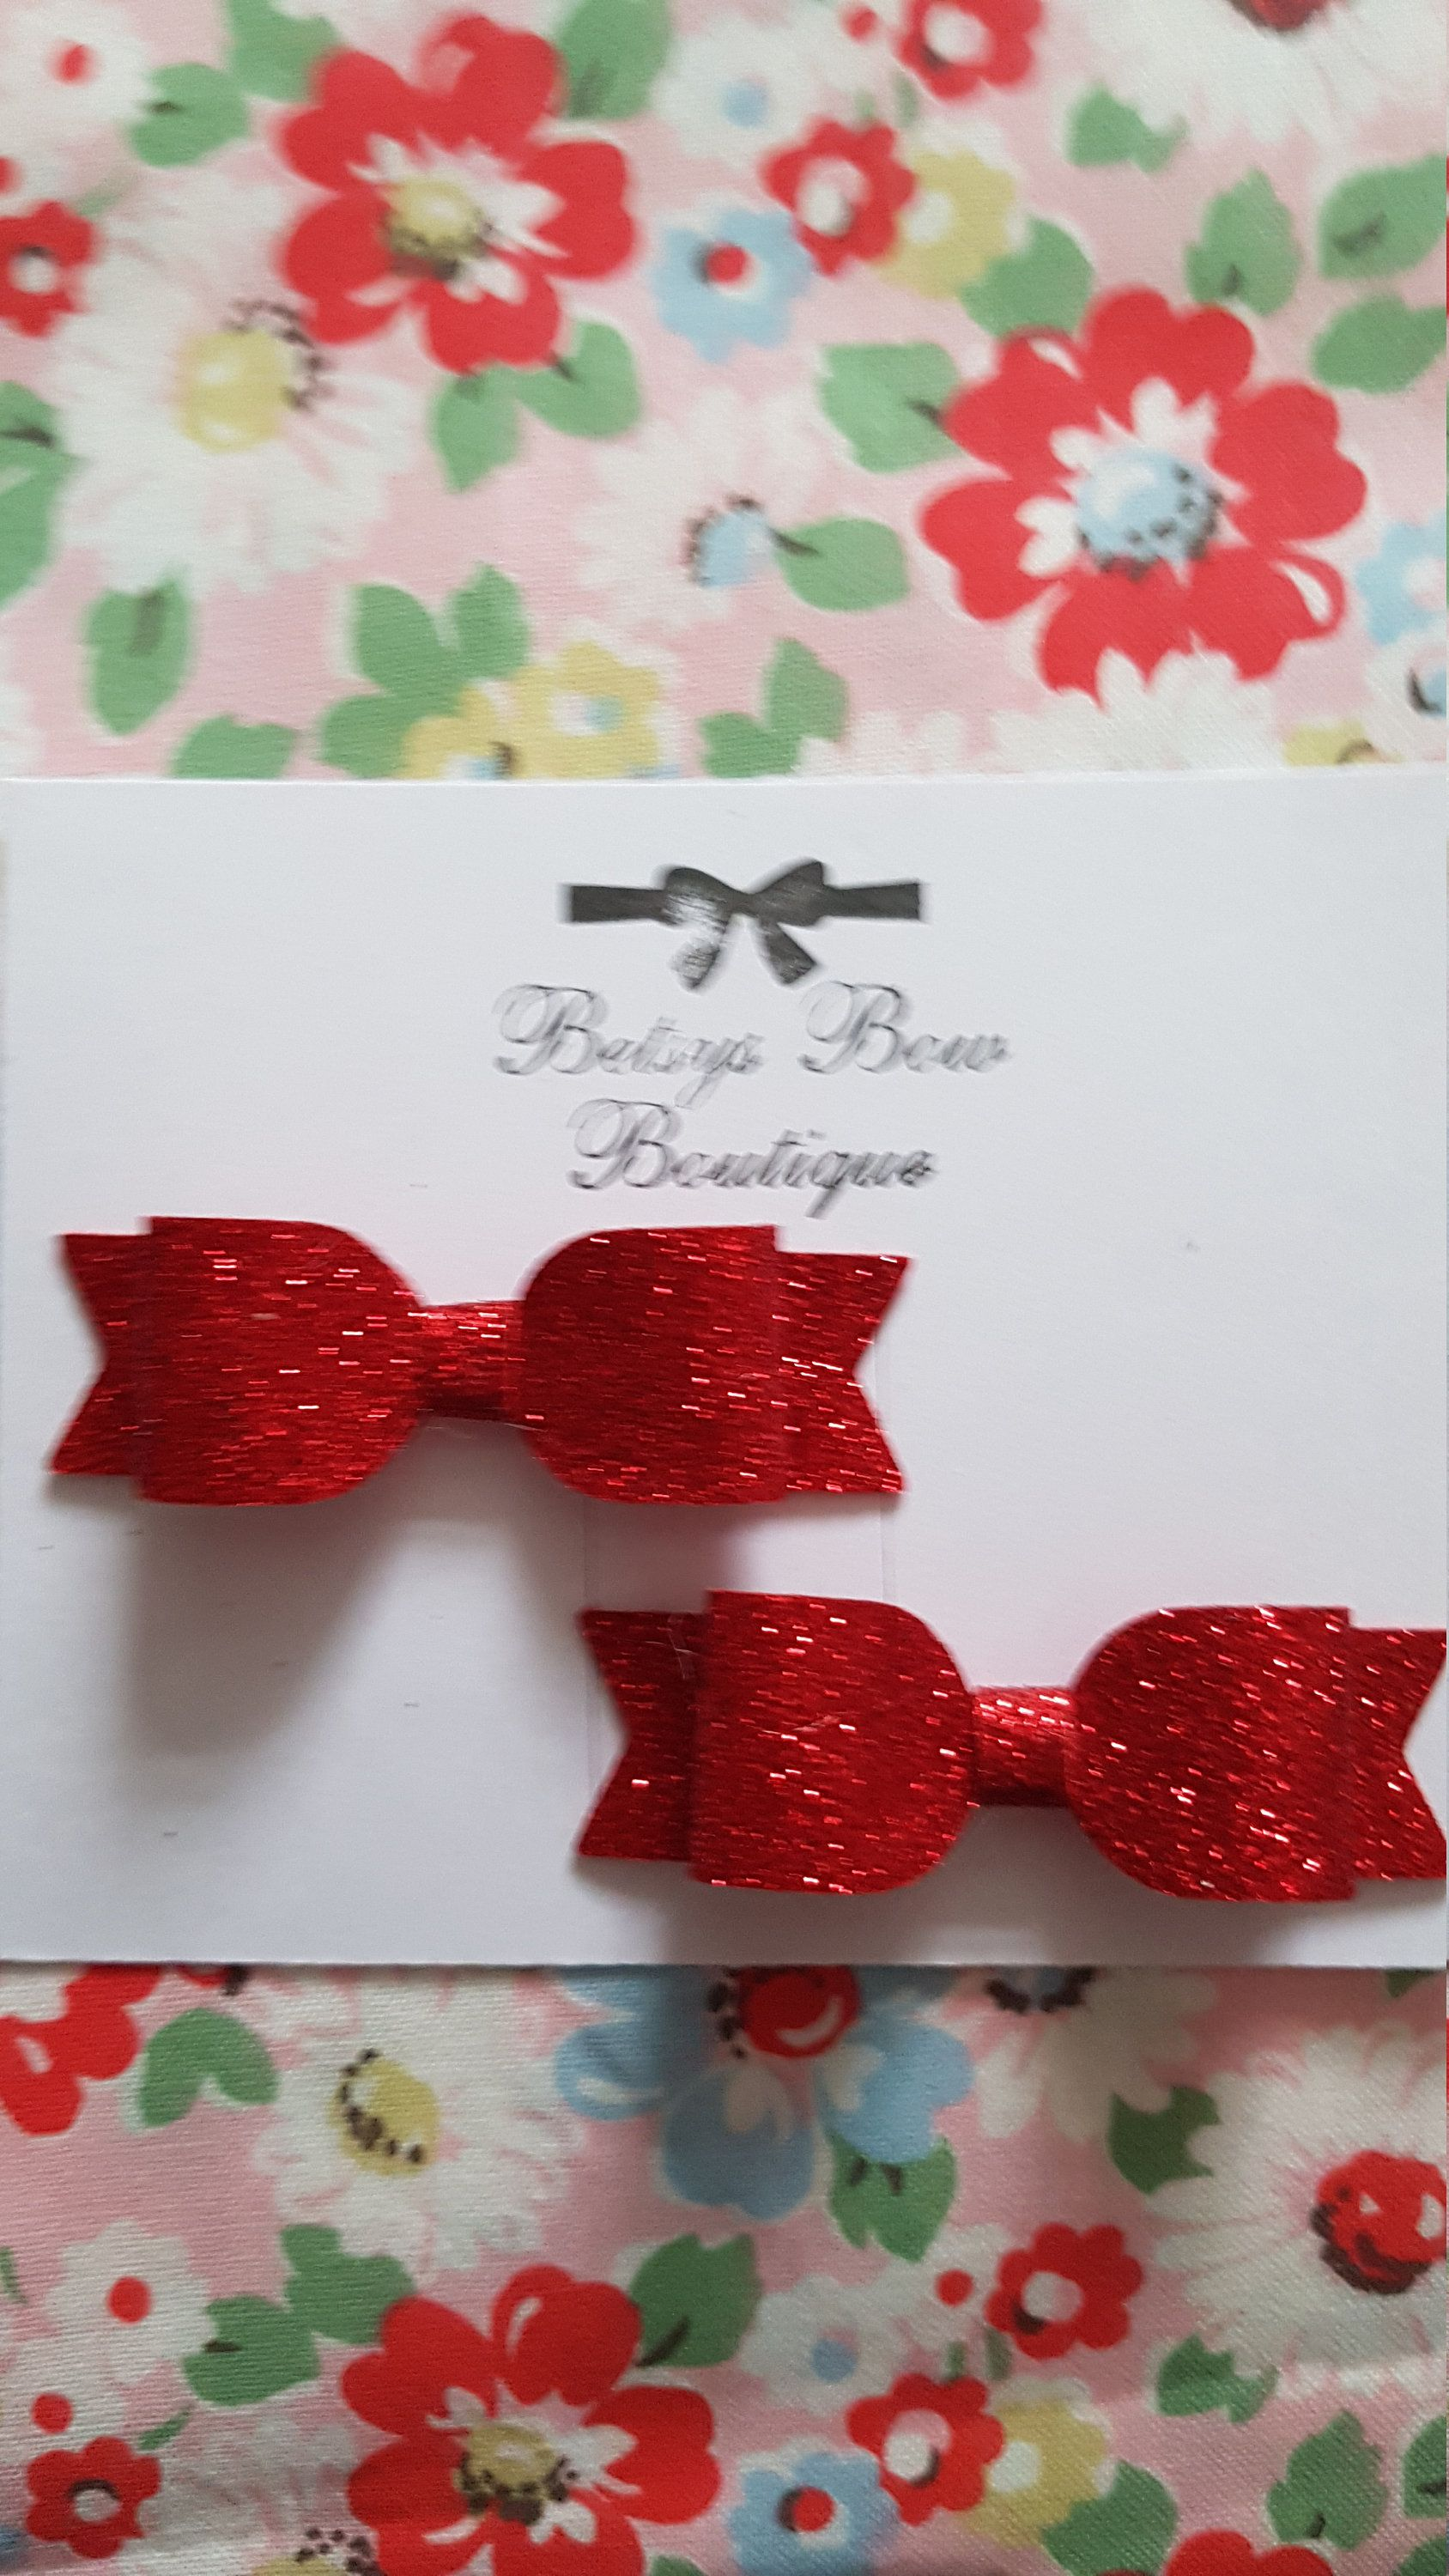 Pig Tail Bows Dorothy Wizard Of Oz Hair Bows Hair Clips Hair Accessories Set Of 2 Red Glitter Sparkly Gift By Pig Tail Bows Hair Bows Bow Hair Clips